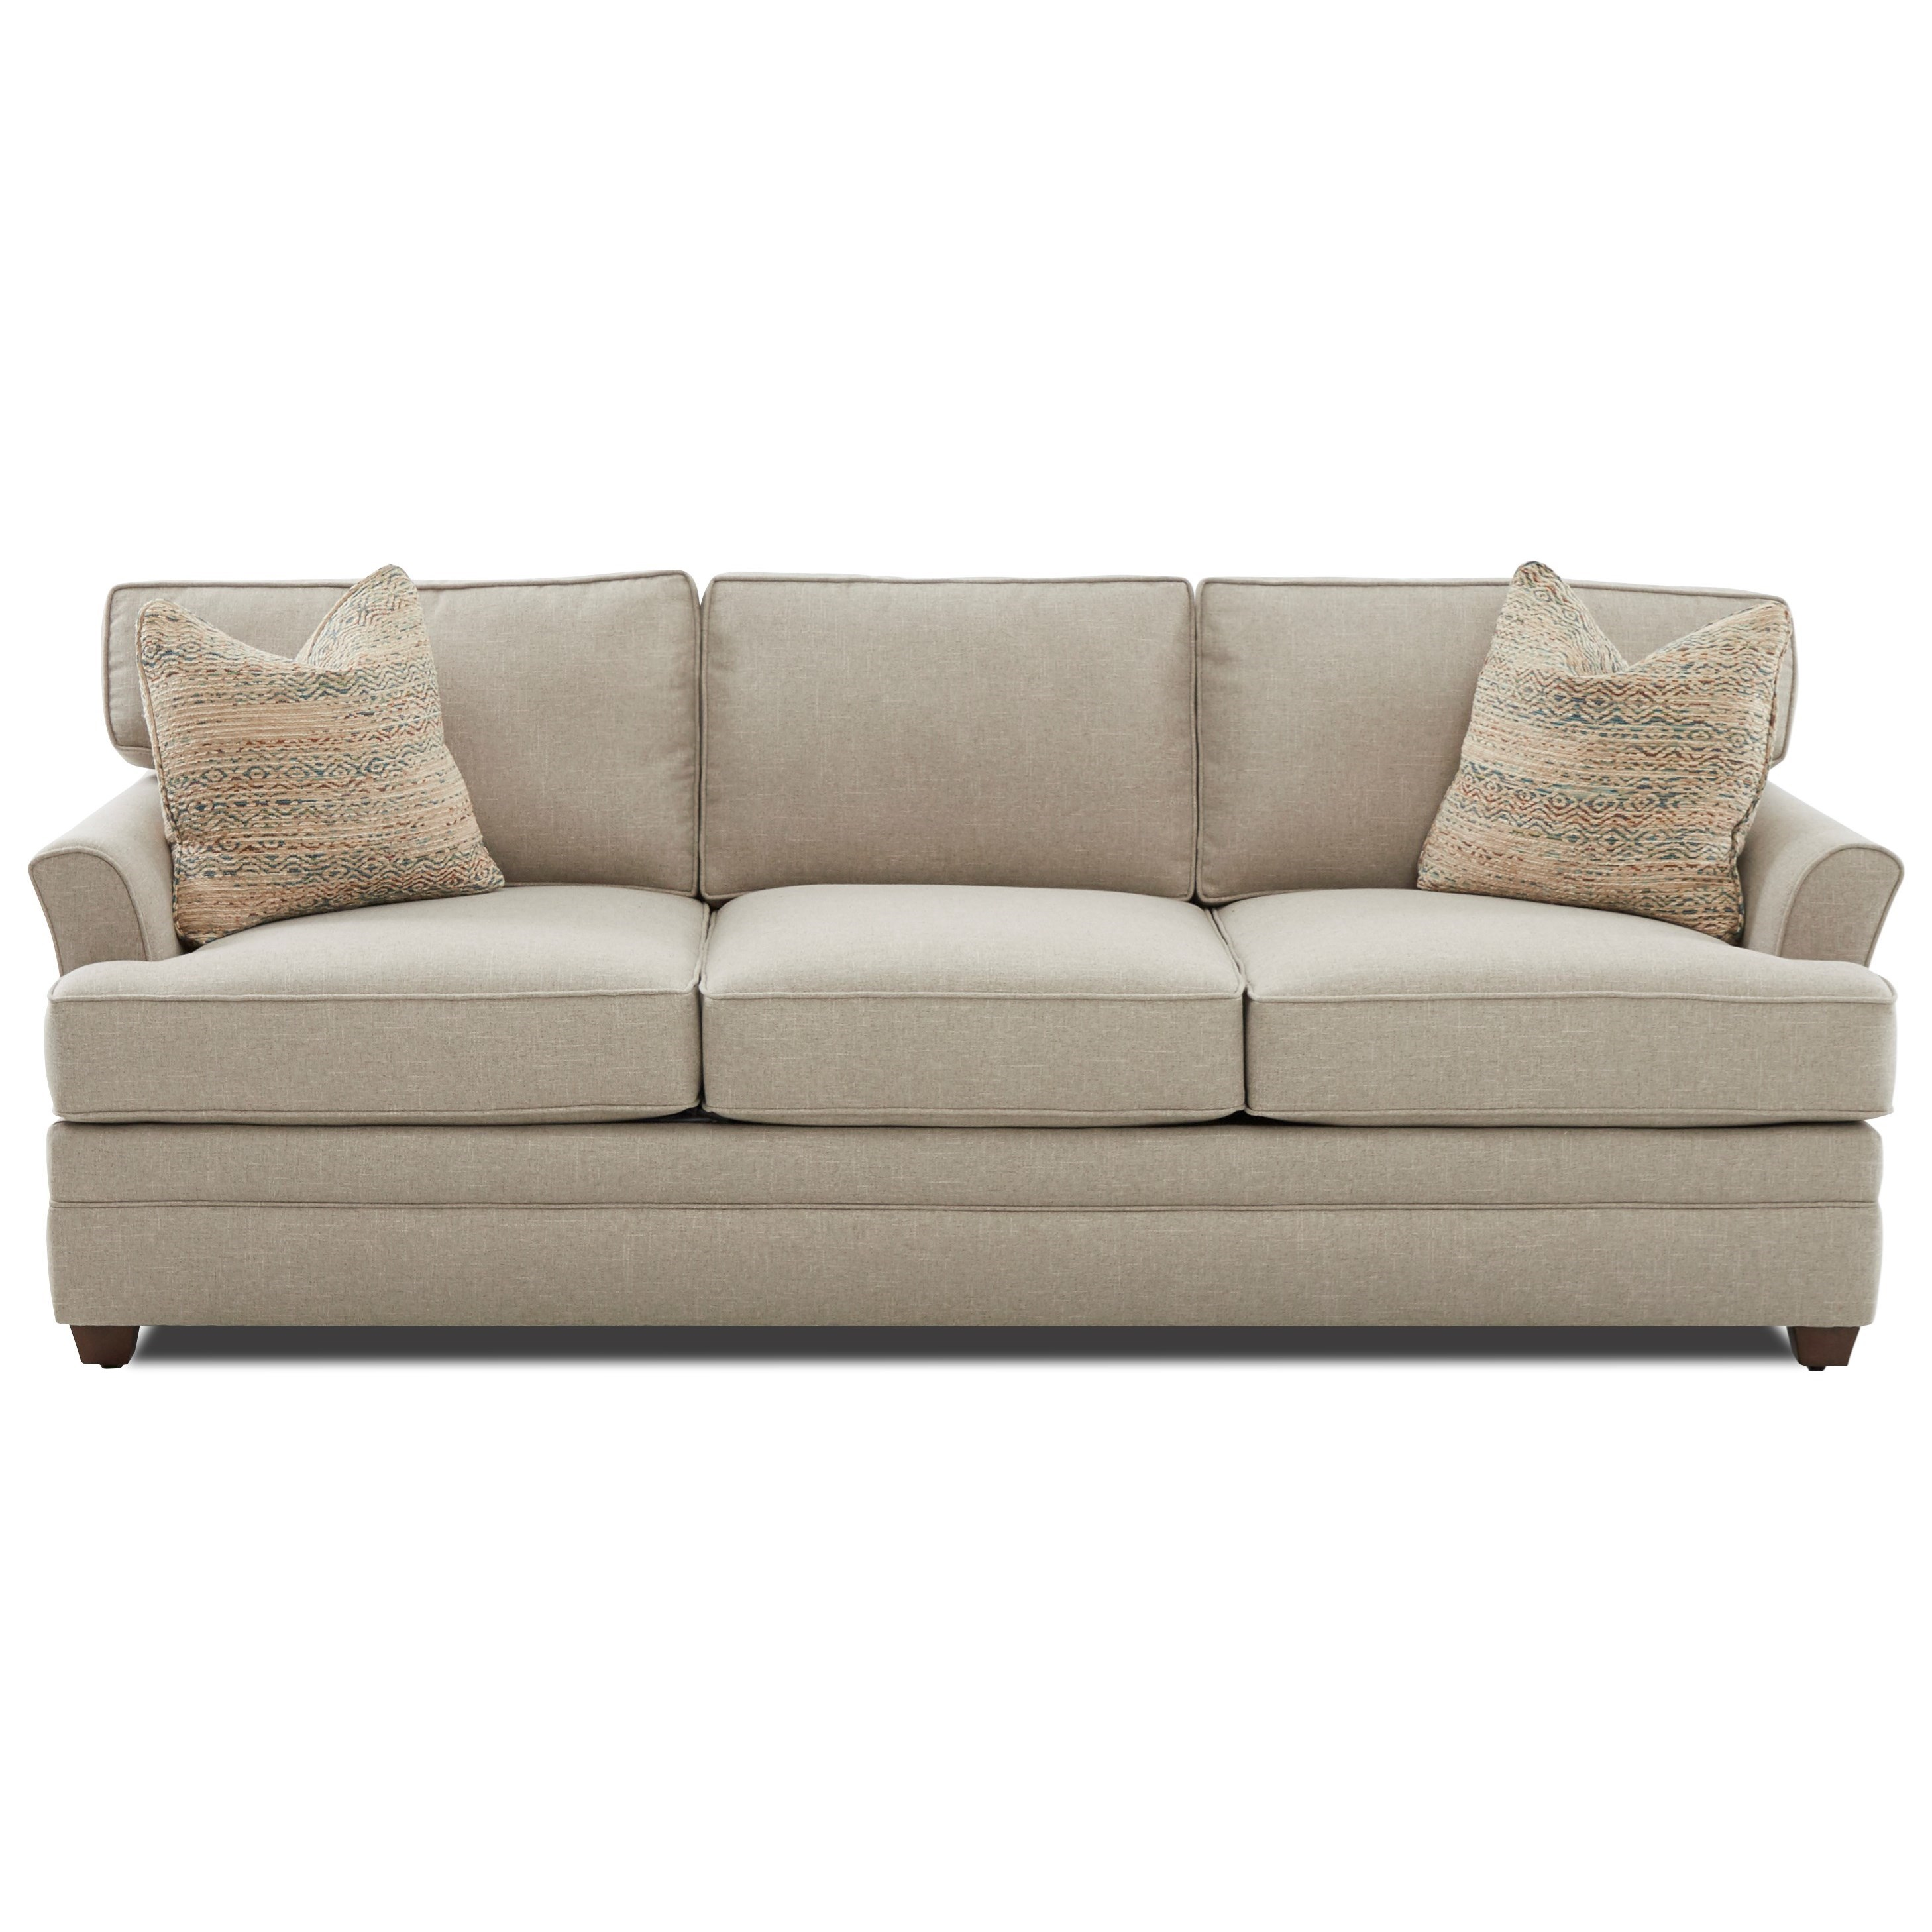 Transitional Flared Arm Sofa with Enso Memory Foam Mattress